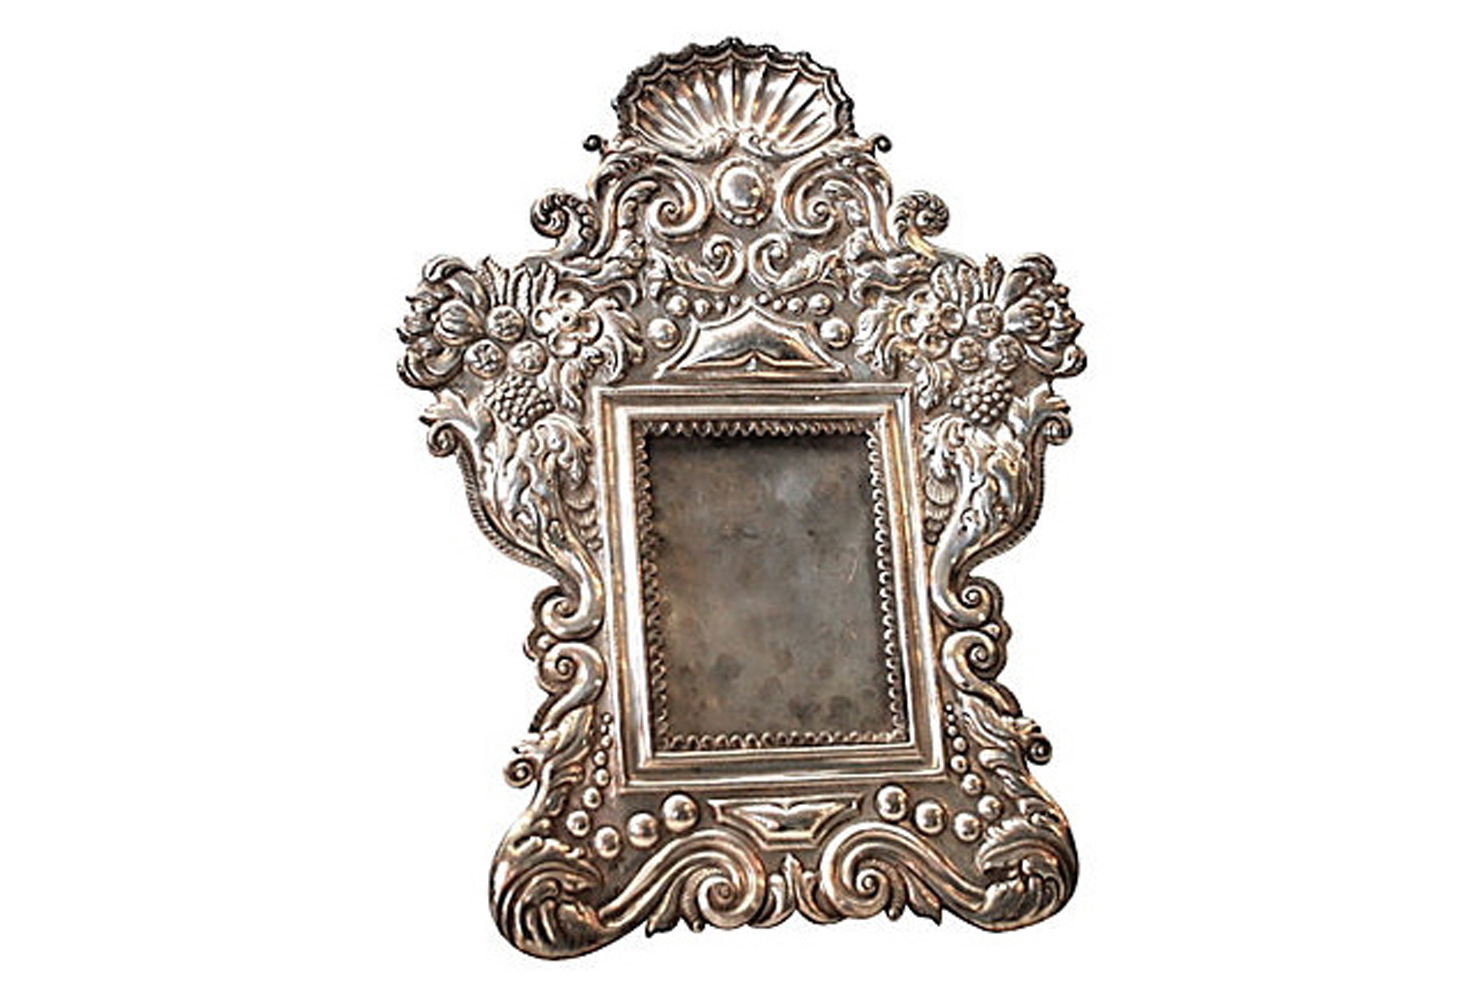 Antique Silver Peruvian Frame | Omero Home